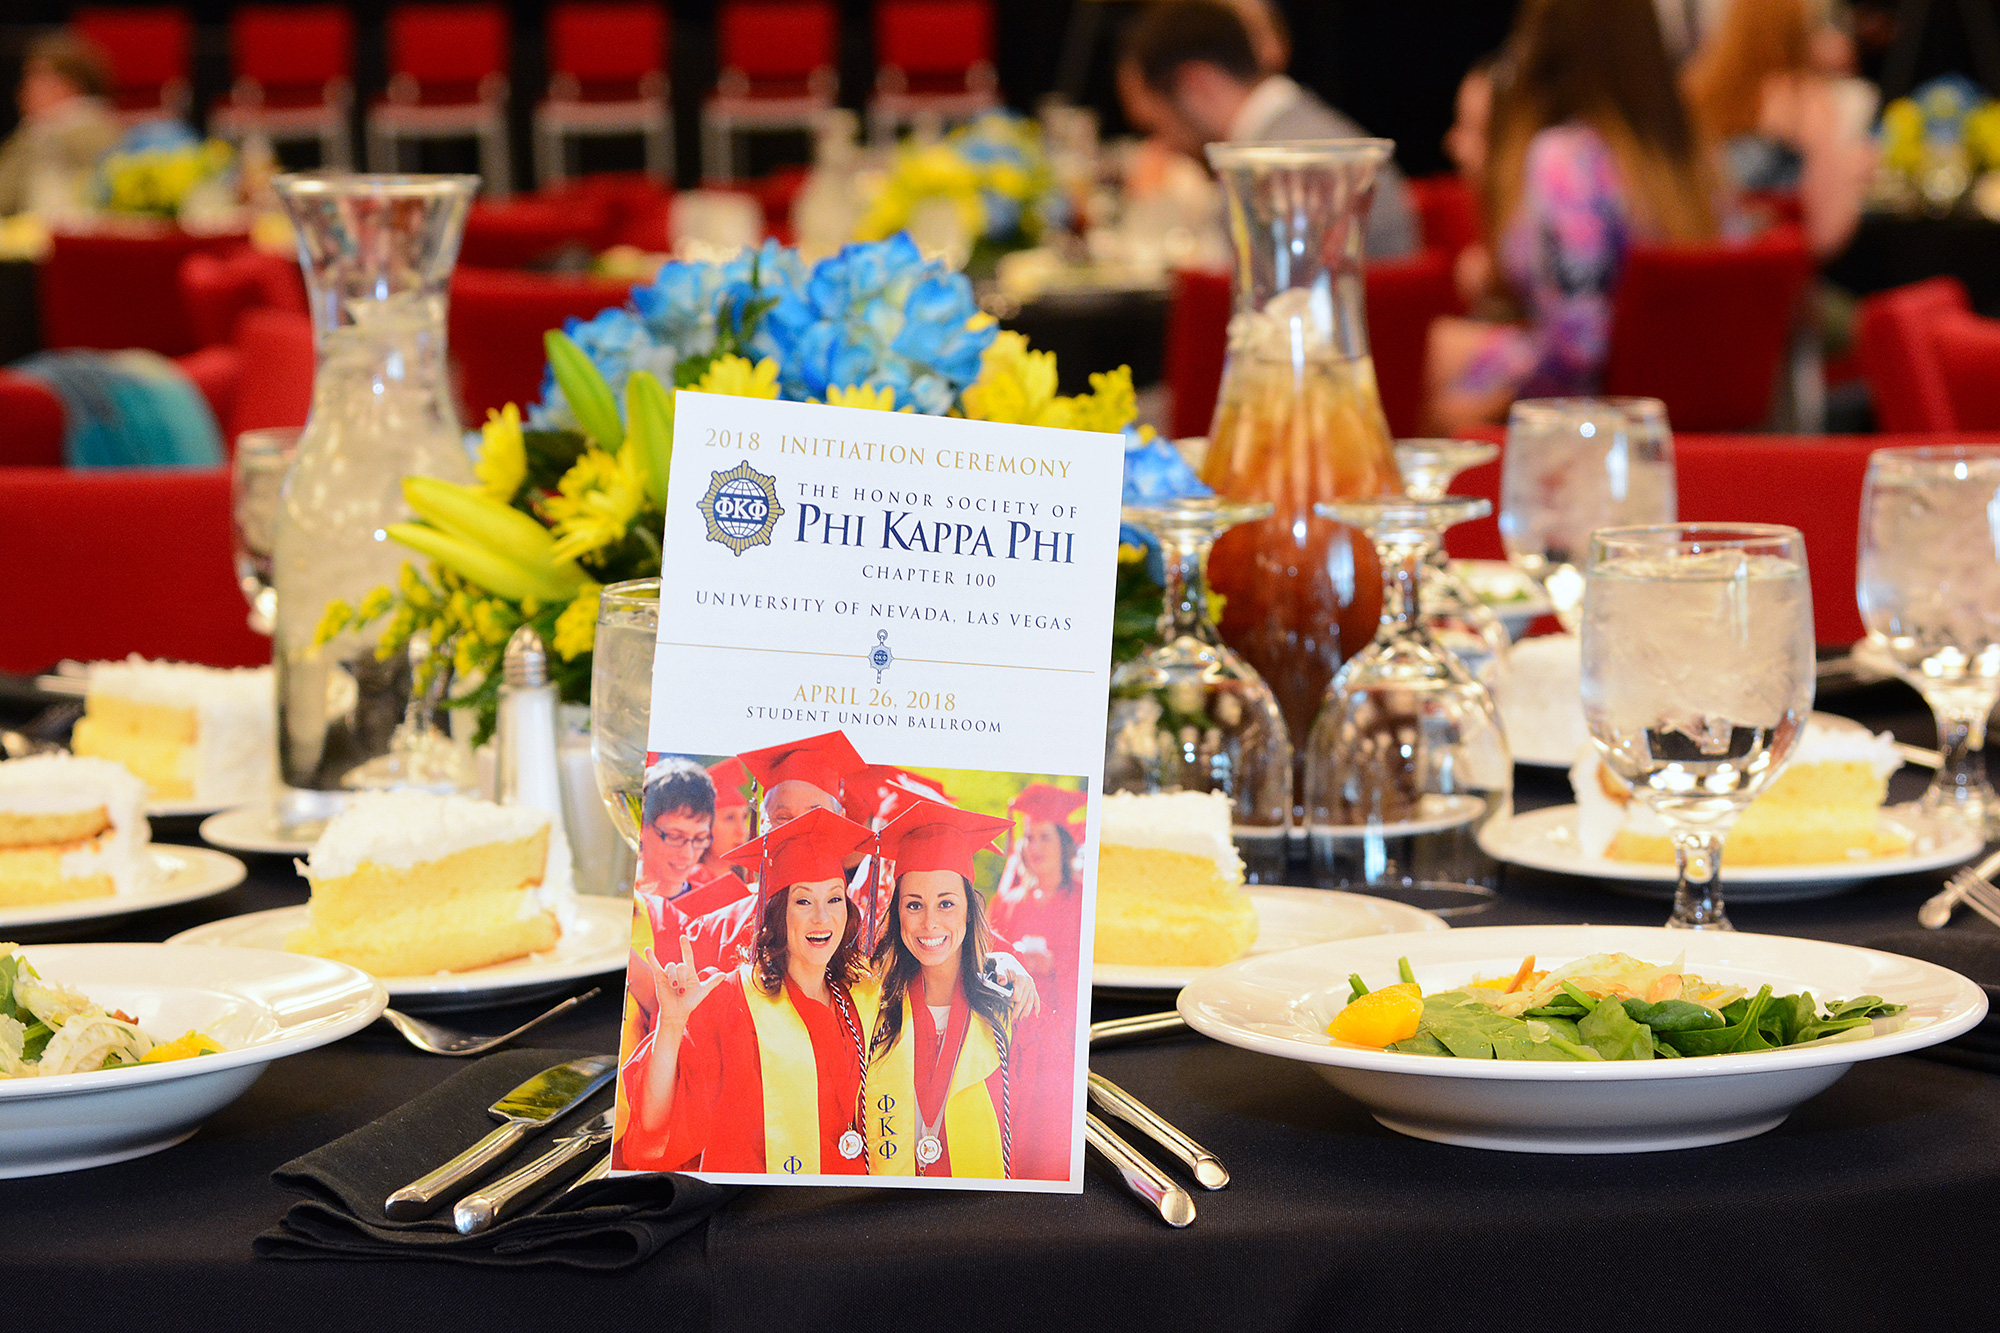 Banquet table featuring a Phi Kappa Phi program